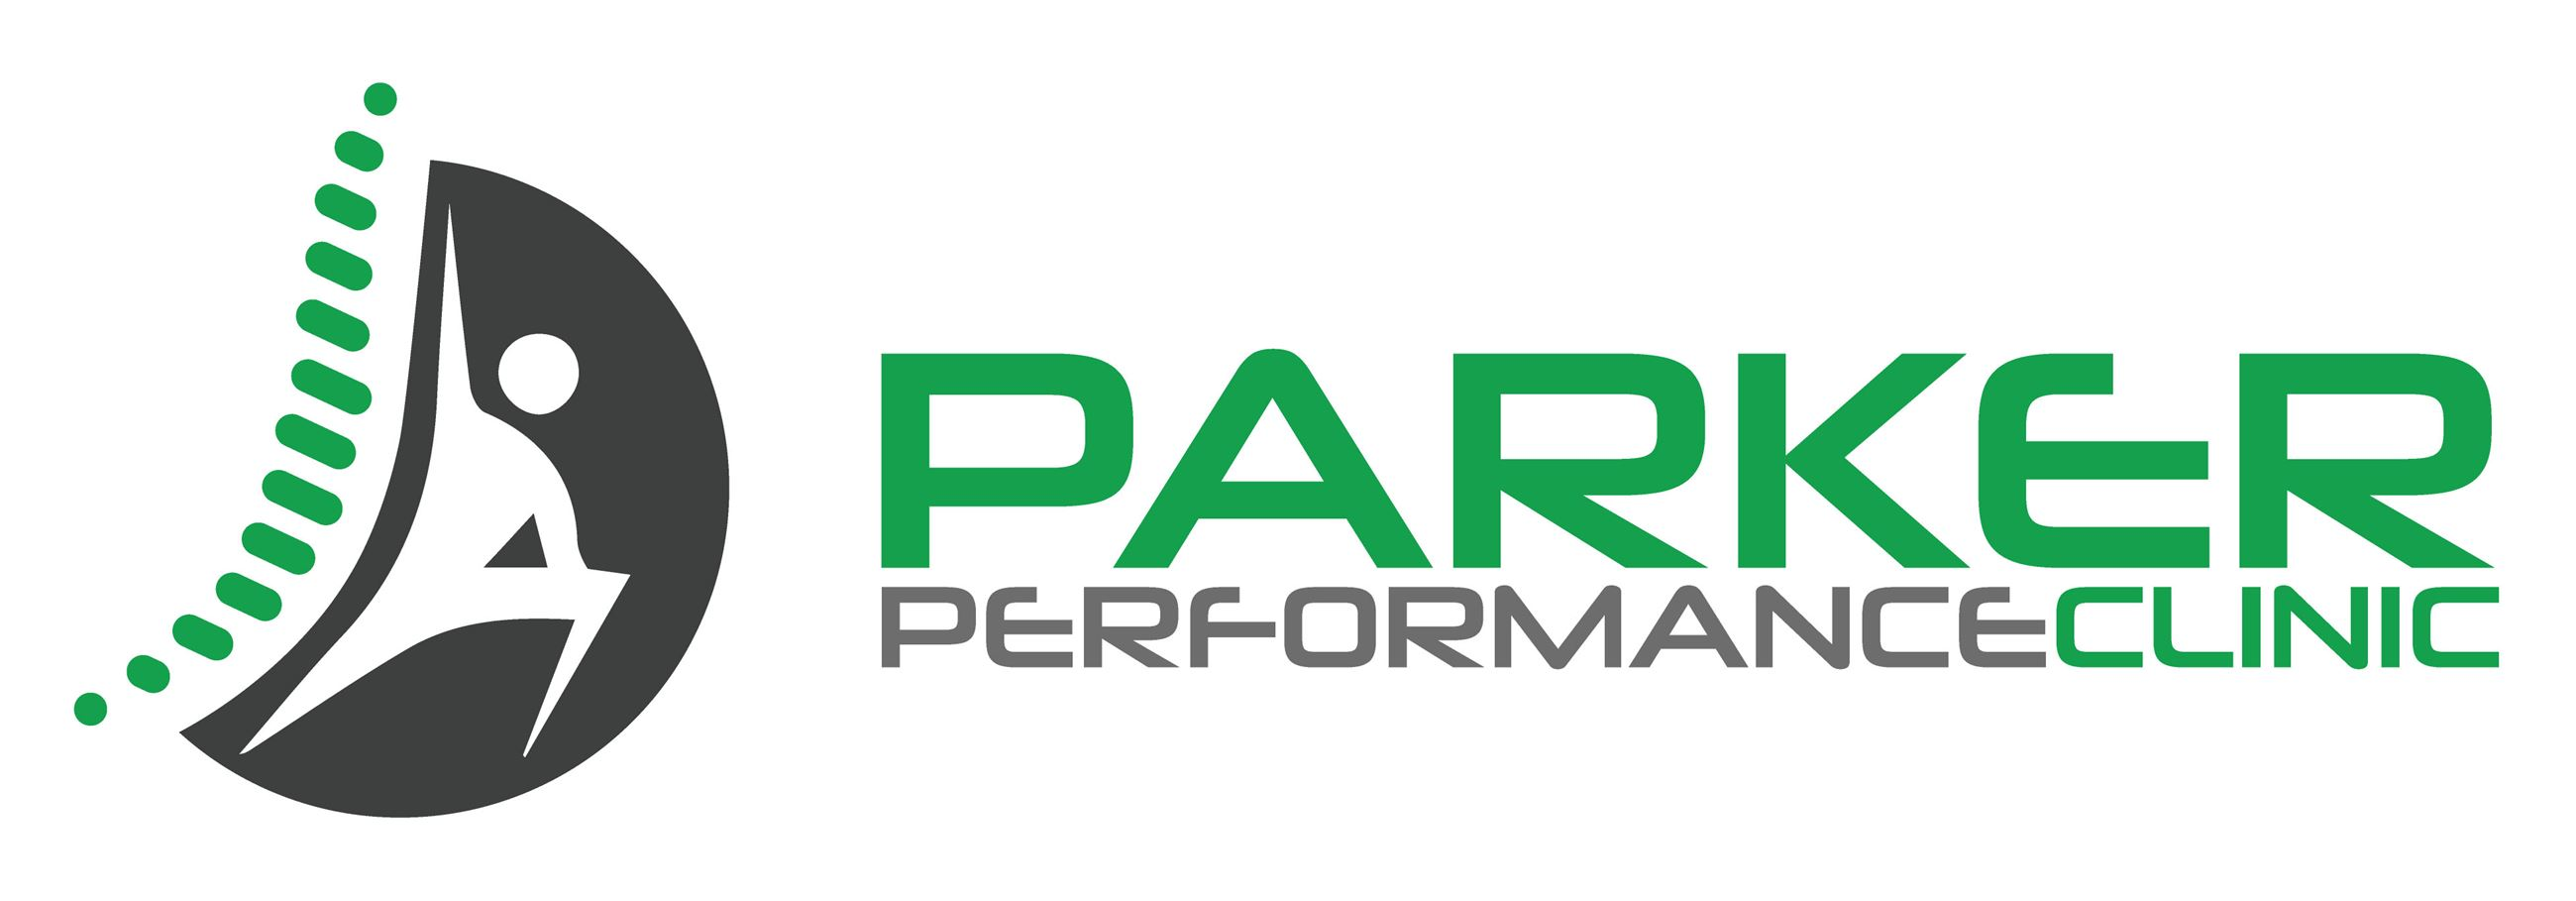 Parker Performance Clinic logo